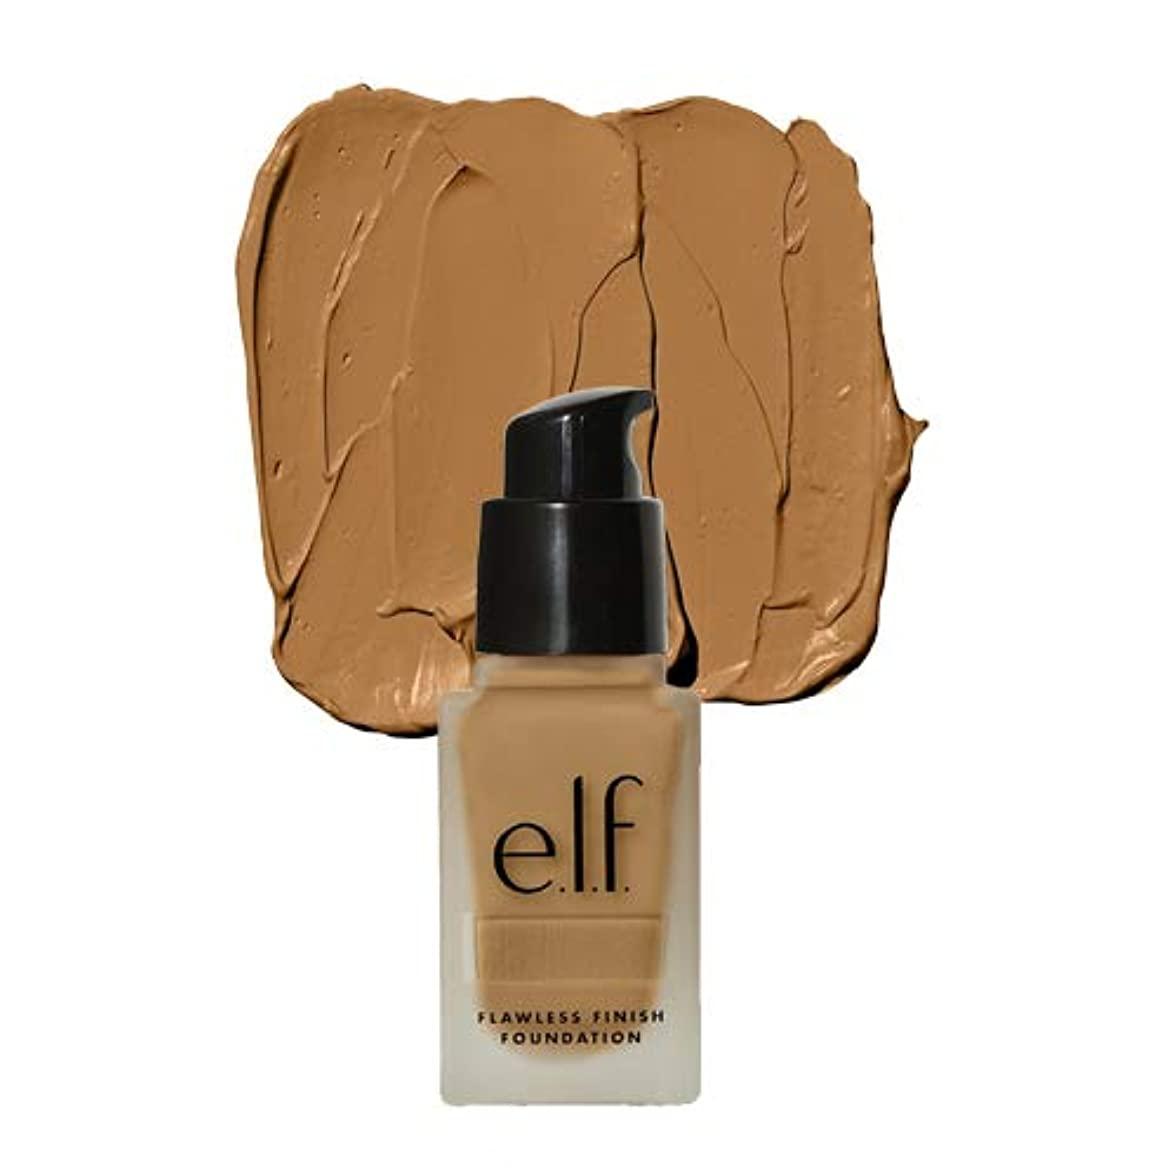 変換楽しむ救出(6 Pack) e.l.f. Oil Free Flawless Finish Foundation - Linen (並行輸入品)